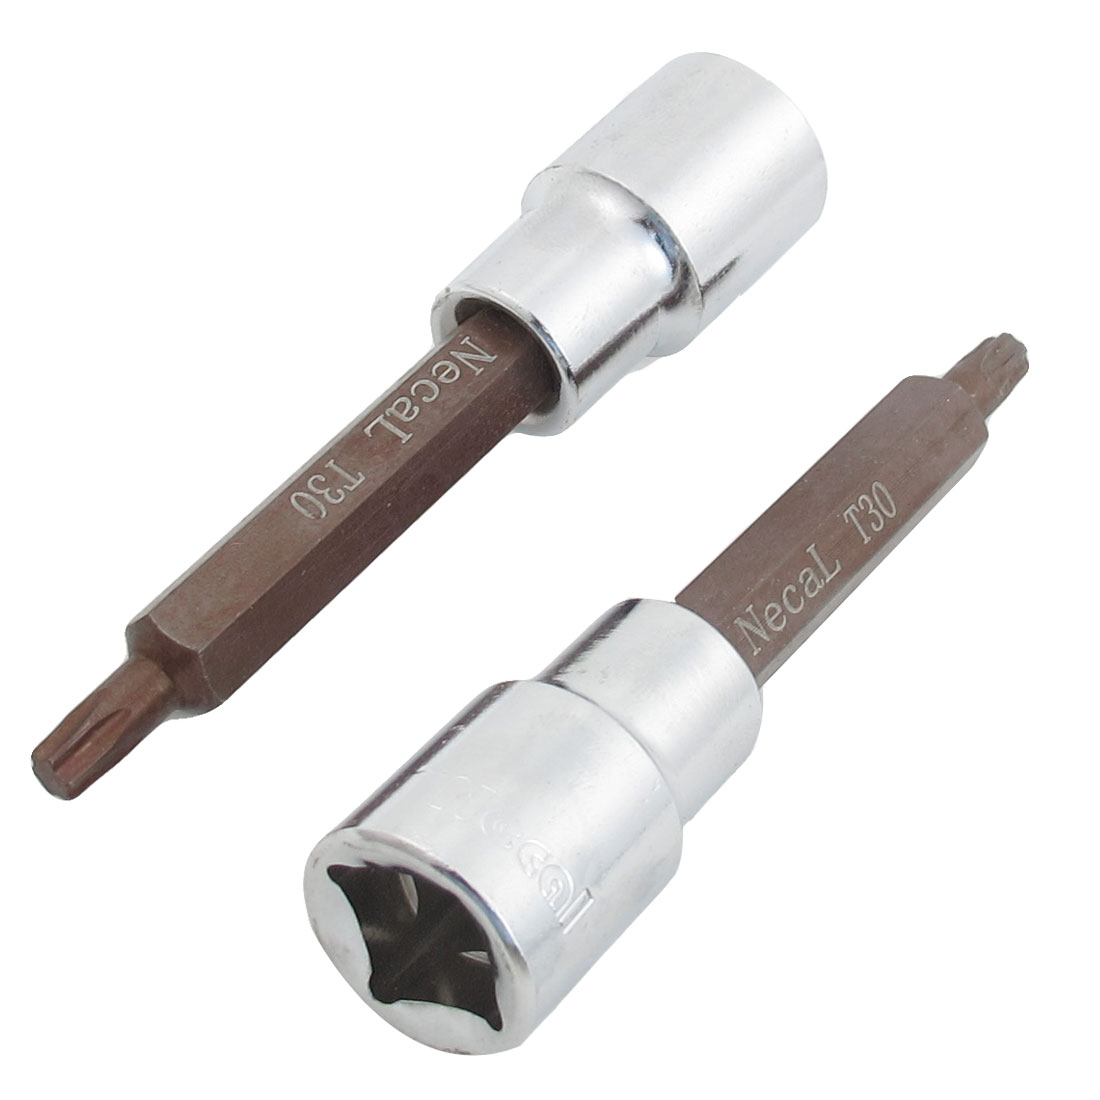 "2 Pcs T30 3/14"" Torx Head Screwdriver Link 1/2"" Square Mechanic Drive Socket"